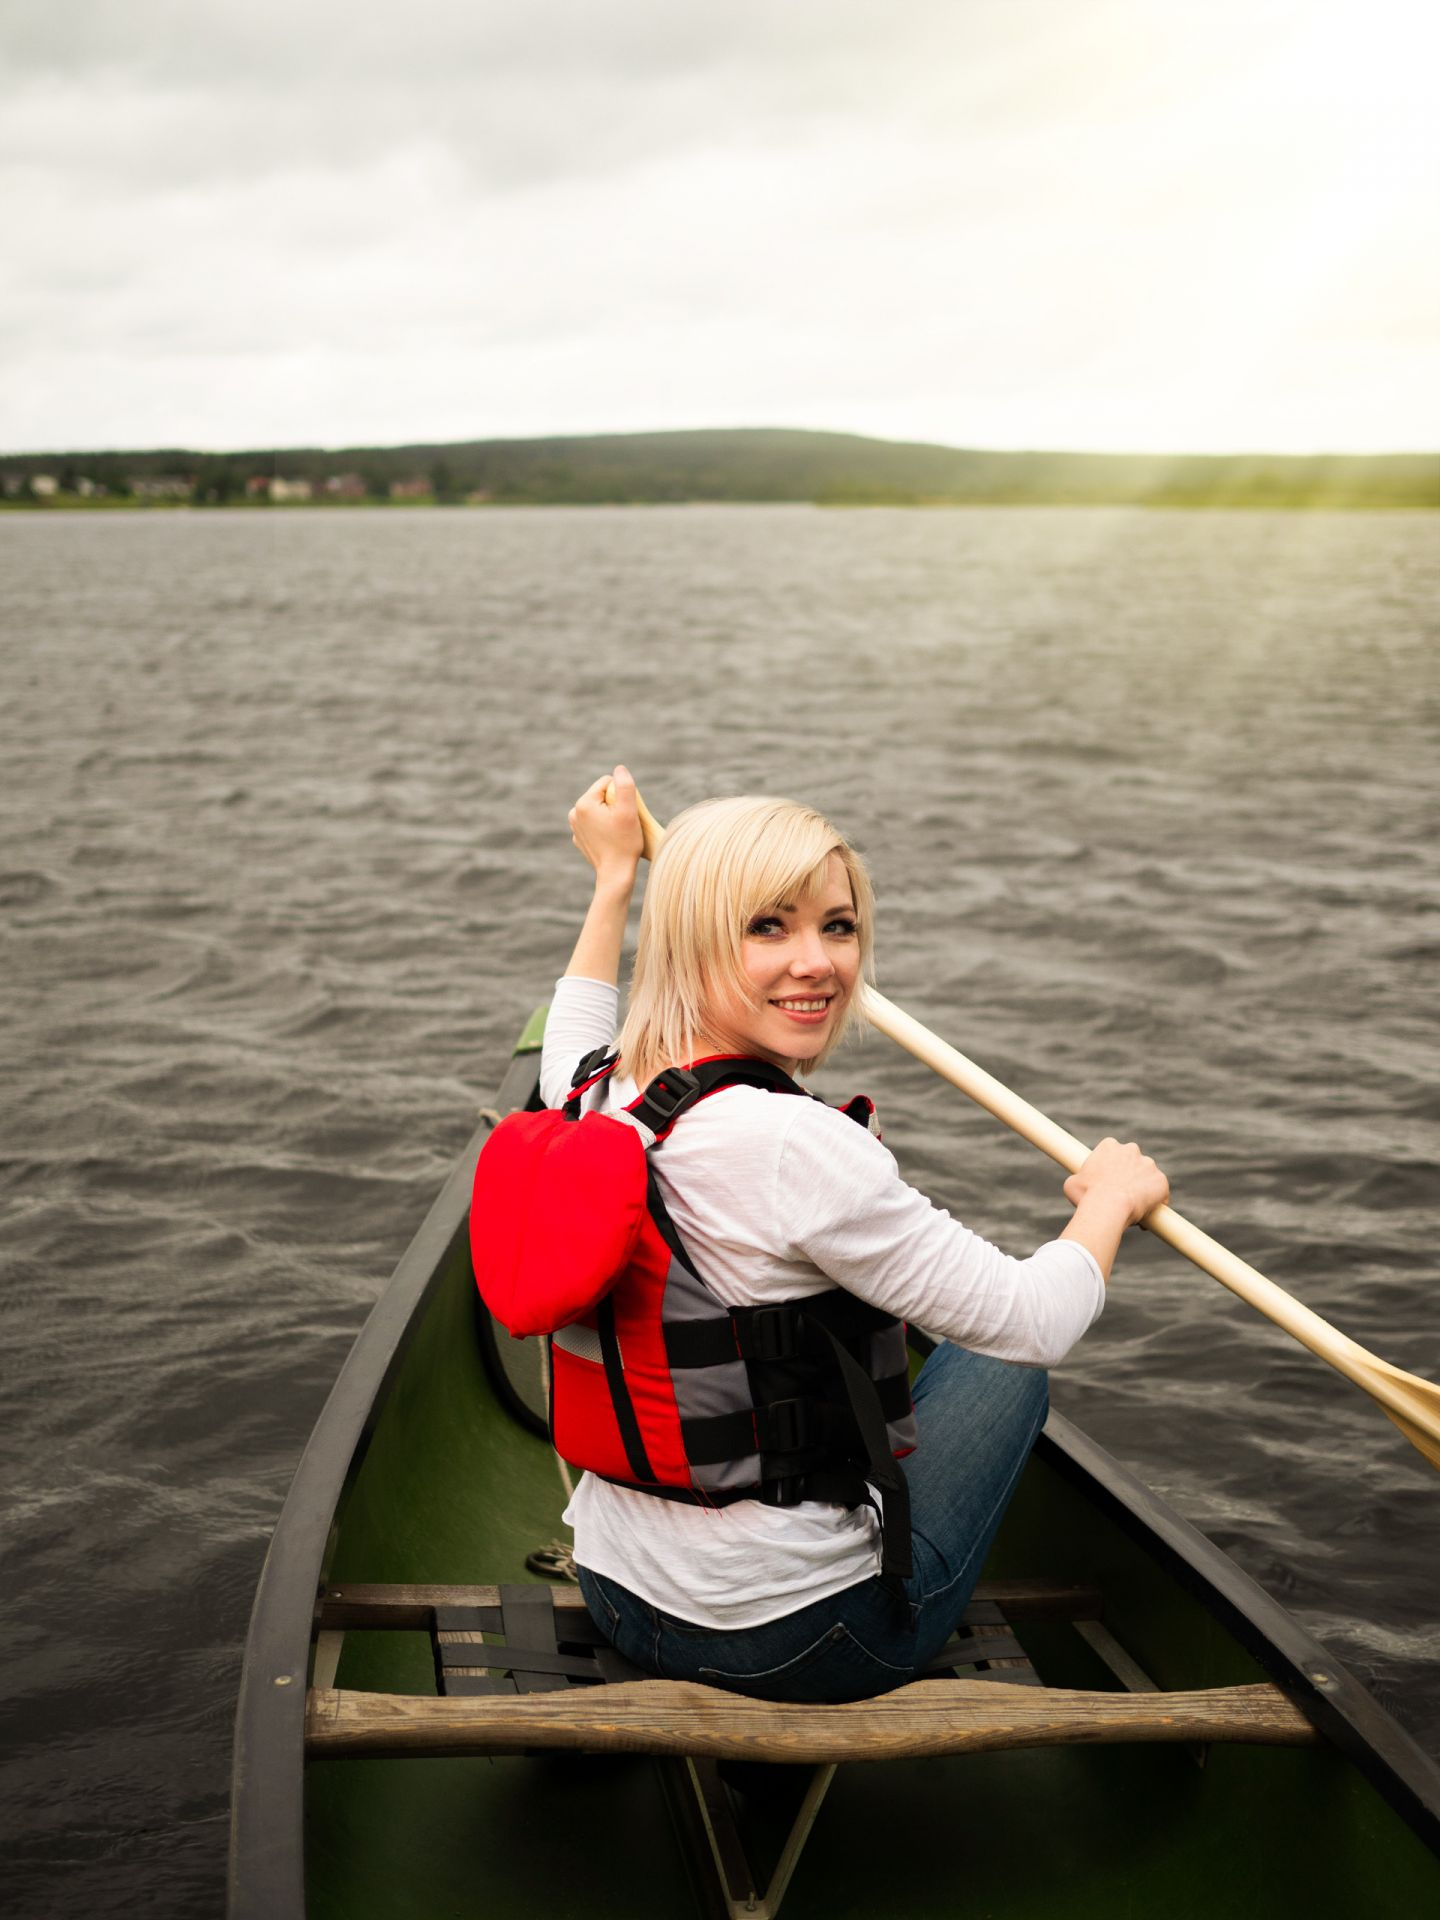 Carly Rae Jepsen on a canoe in Lapland, Finland